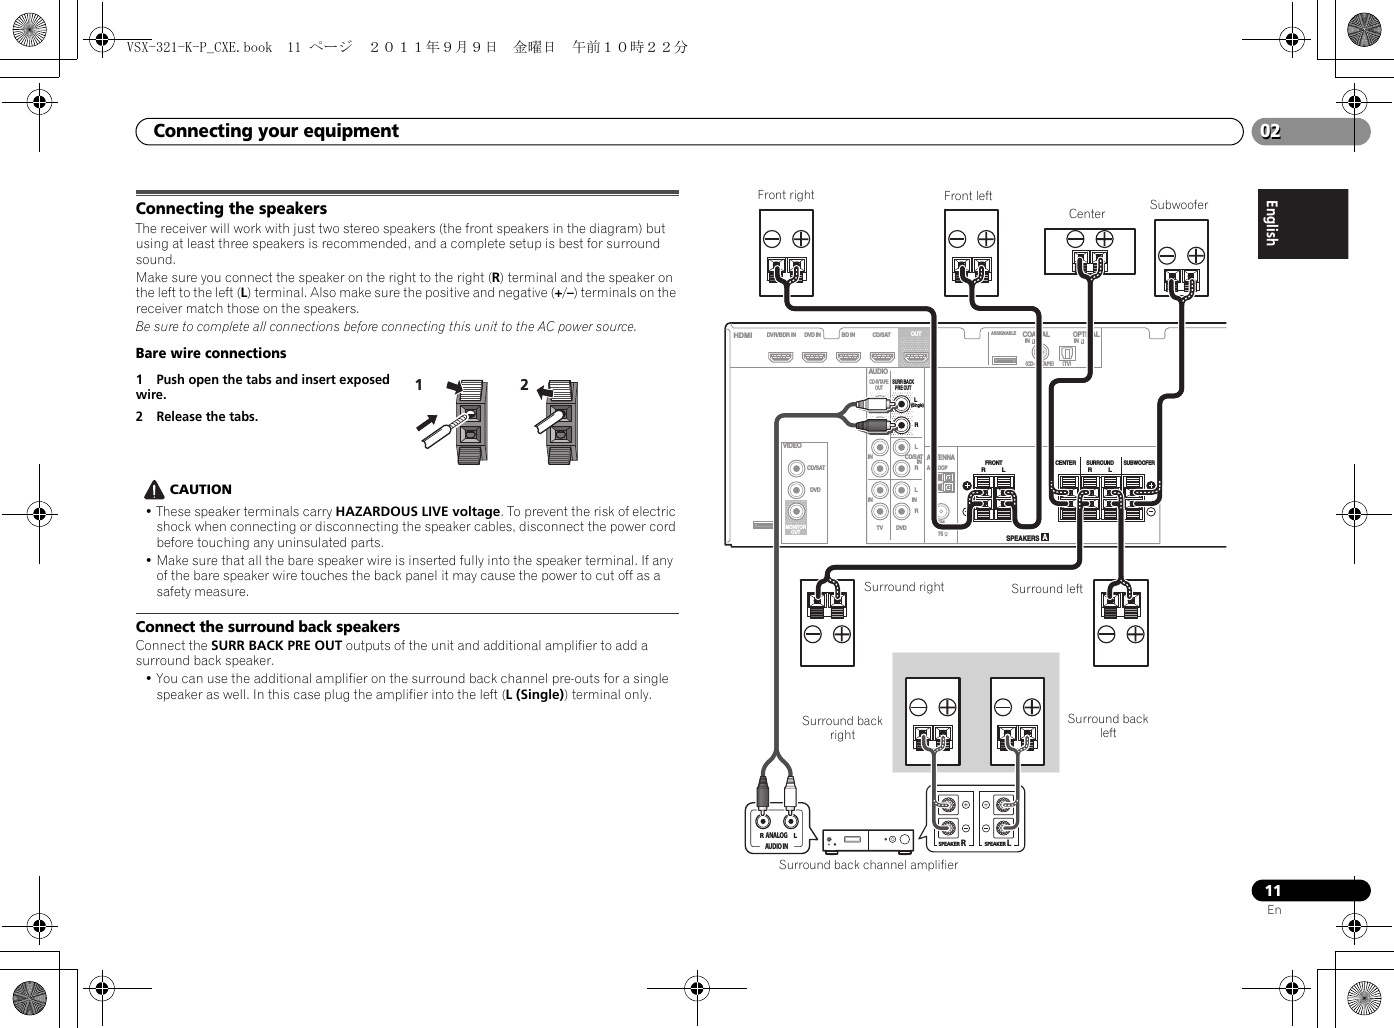 Wiring Diagram Bose Surround Great Installation Of Acoustimass 6 321 User Manual Diagrams Repair Scheme Cadillac